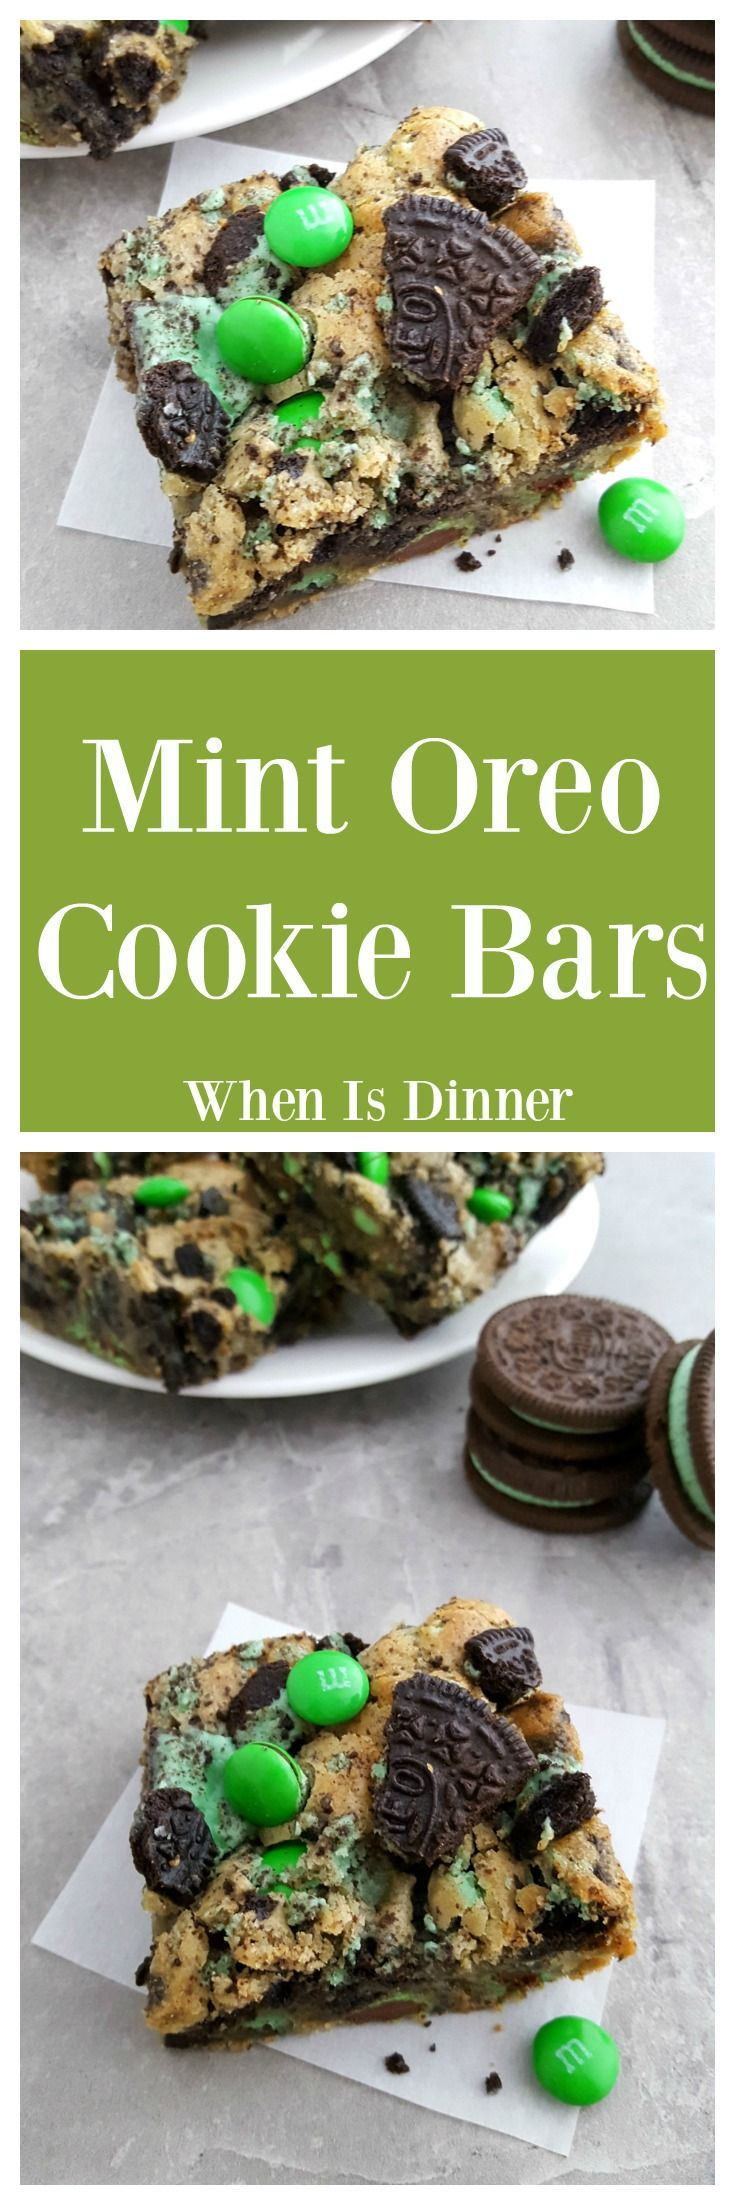 Mint Oreo Cookie Bars via @Kdkaren